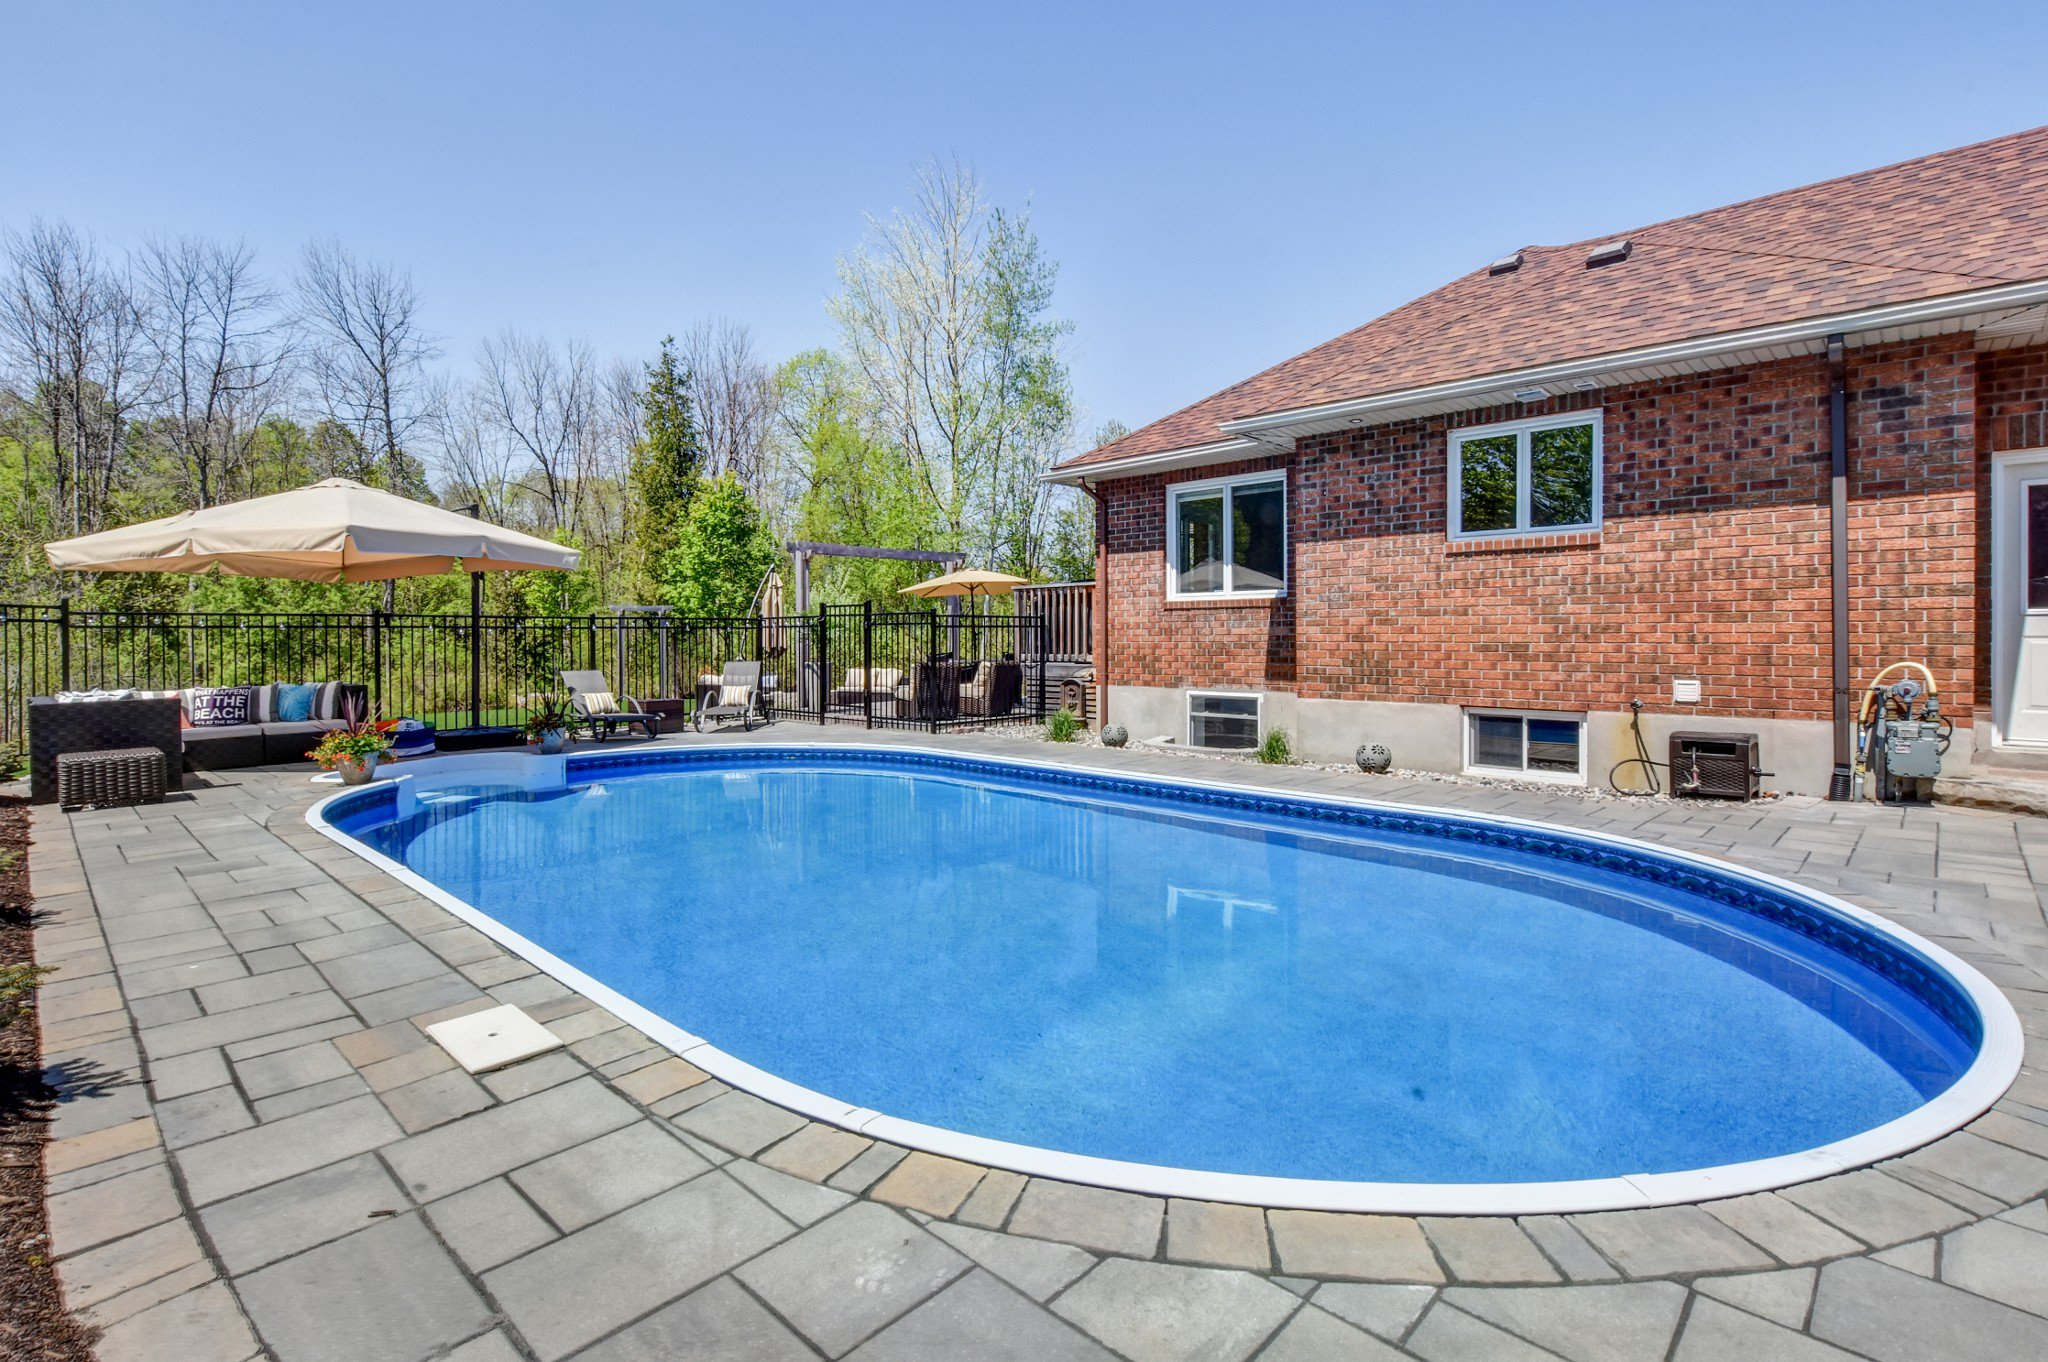 Photo 60: Photos: 1490 REINDEER WAY.: Greely House for sale (Ottawa)  : MLS®# 1109530